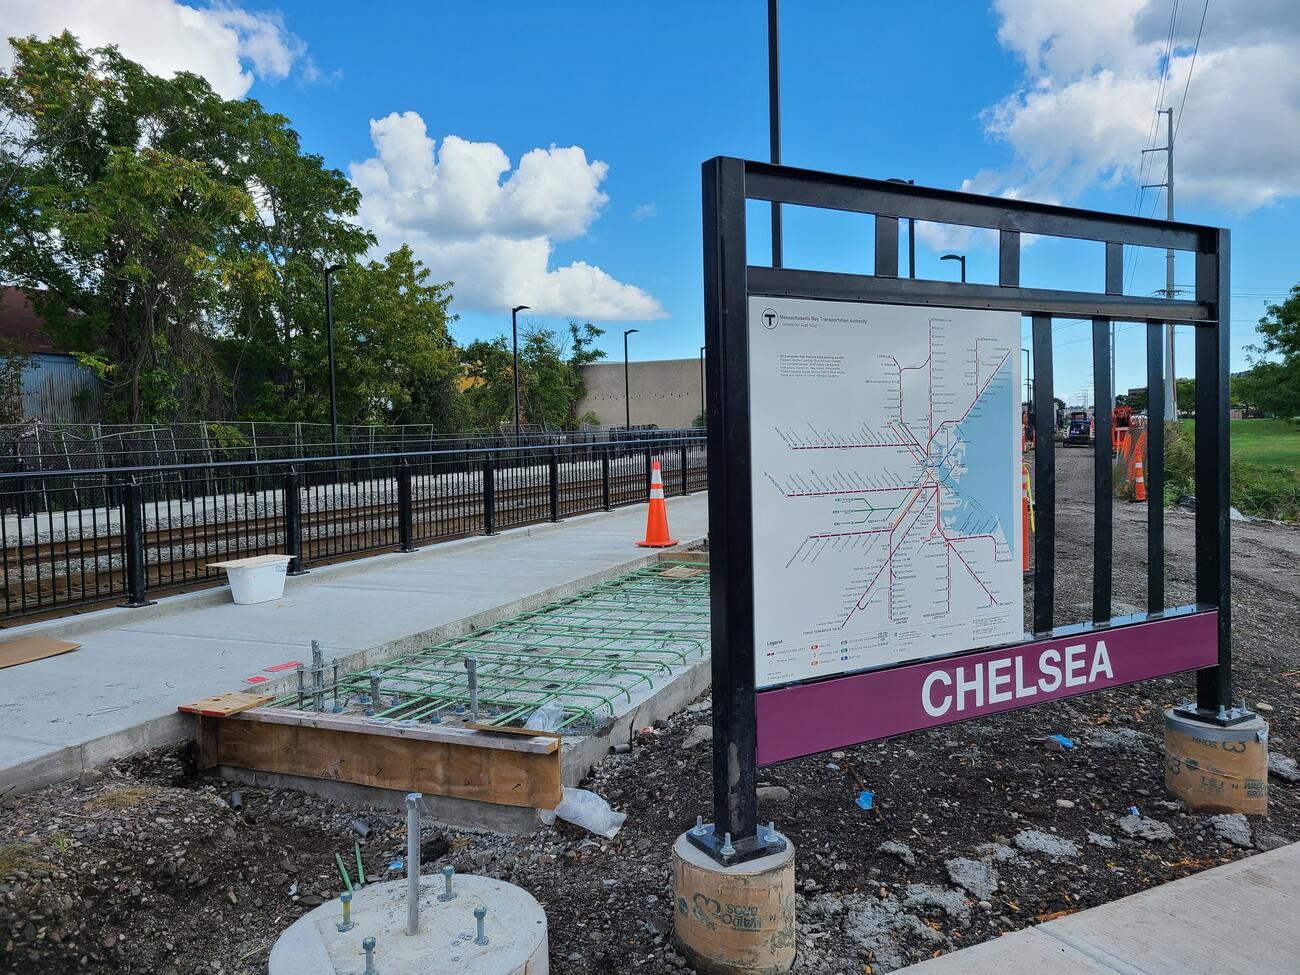 At right are the Chelsea station sign and map, partially installed. At left is a new sidewalk alongside a long rectangular foundation frame made of wood, cement and a grid of metal bars upon which bike racks will be built. A fence runs from the left edge to the center separating the sidewalk from the train tracks. A blue sky with white clouds can be seen above.